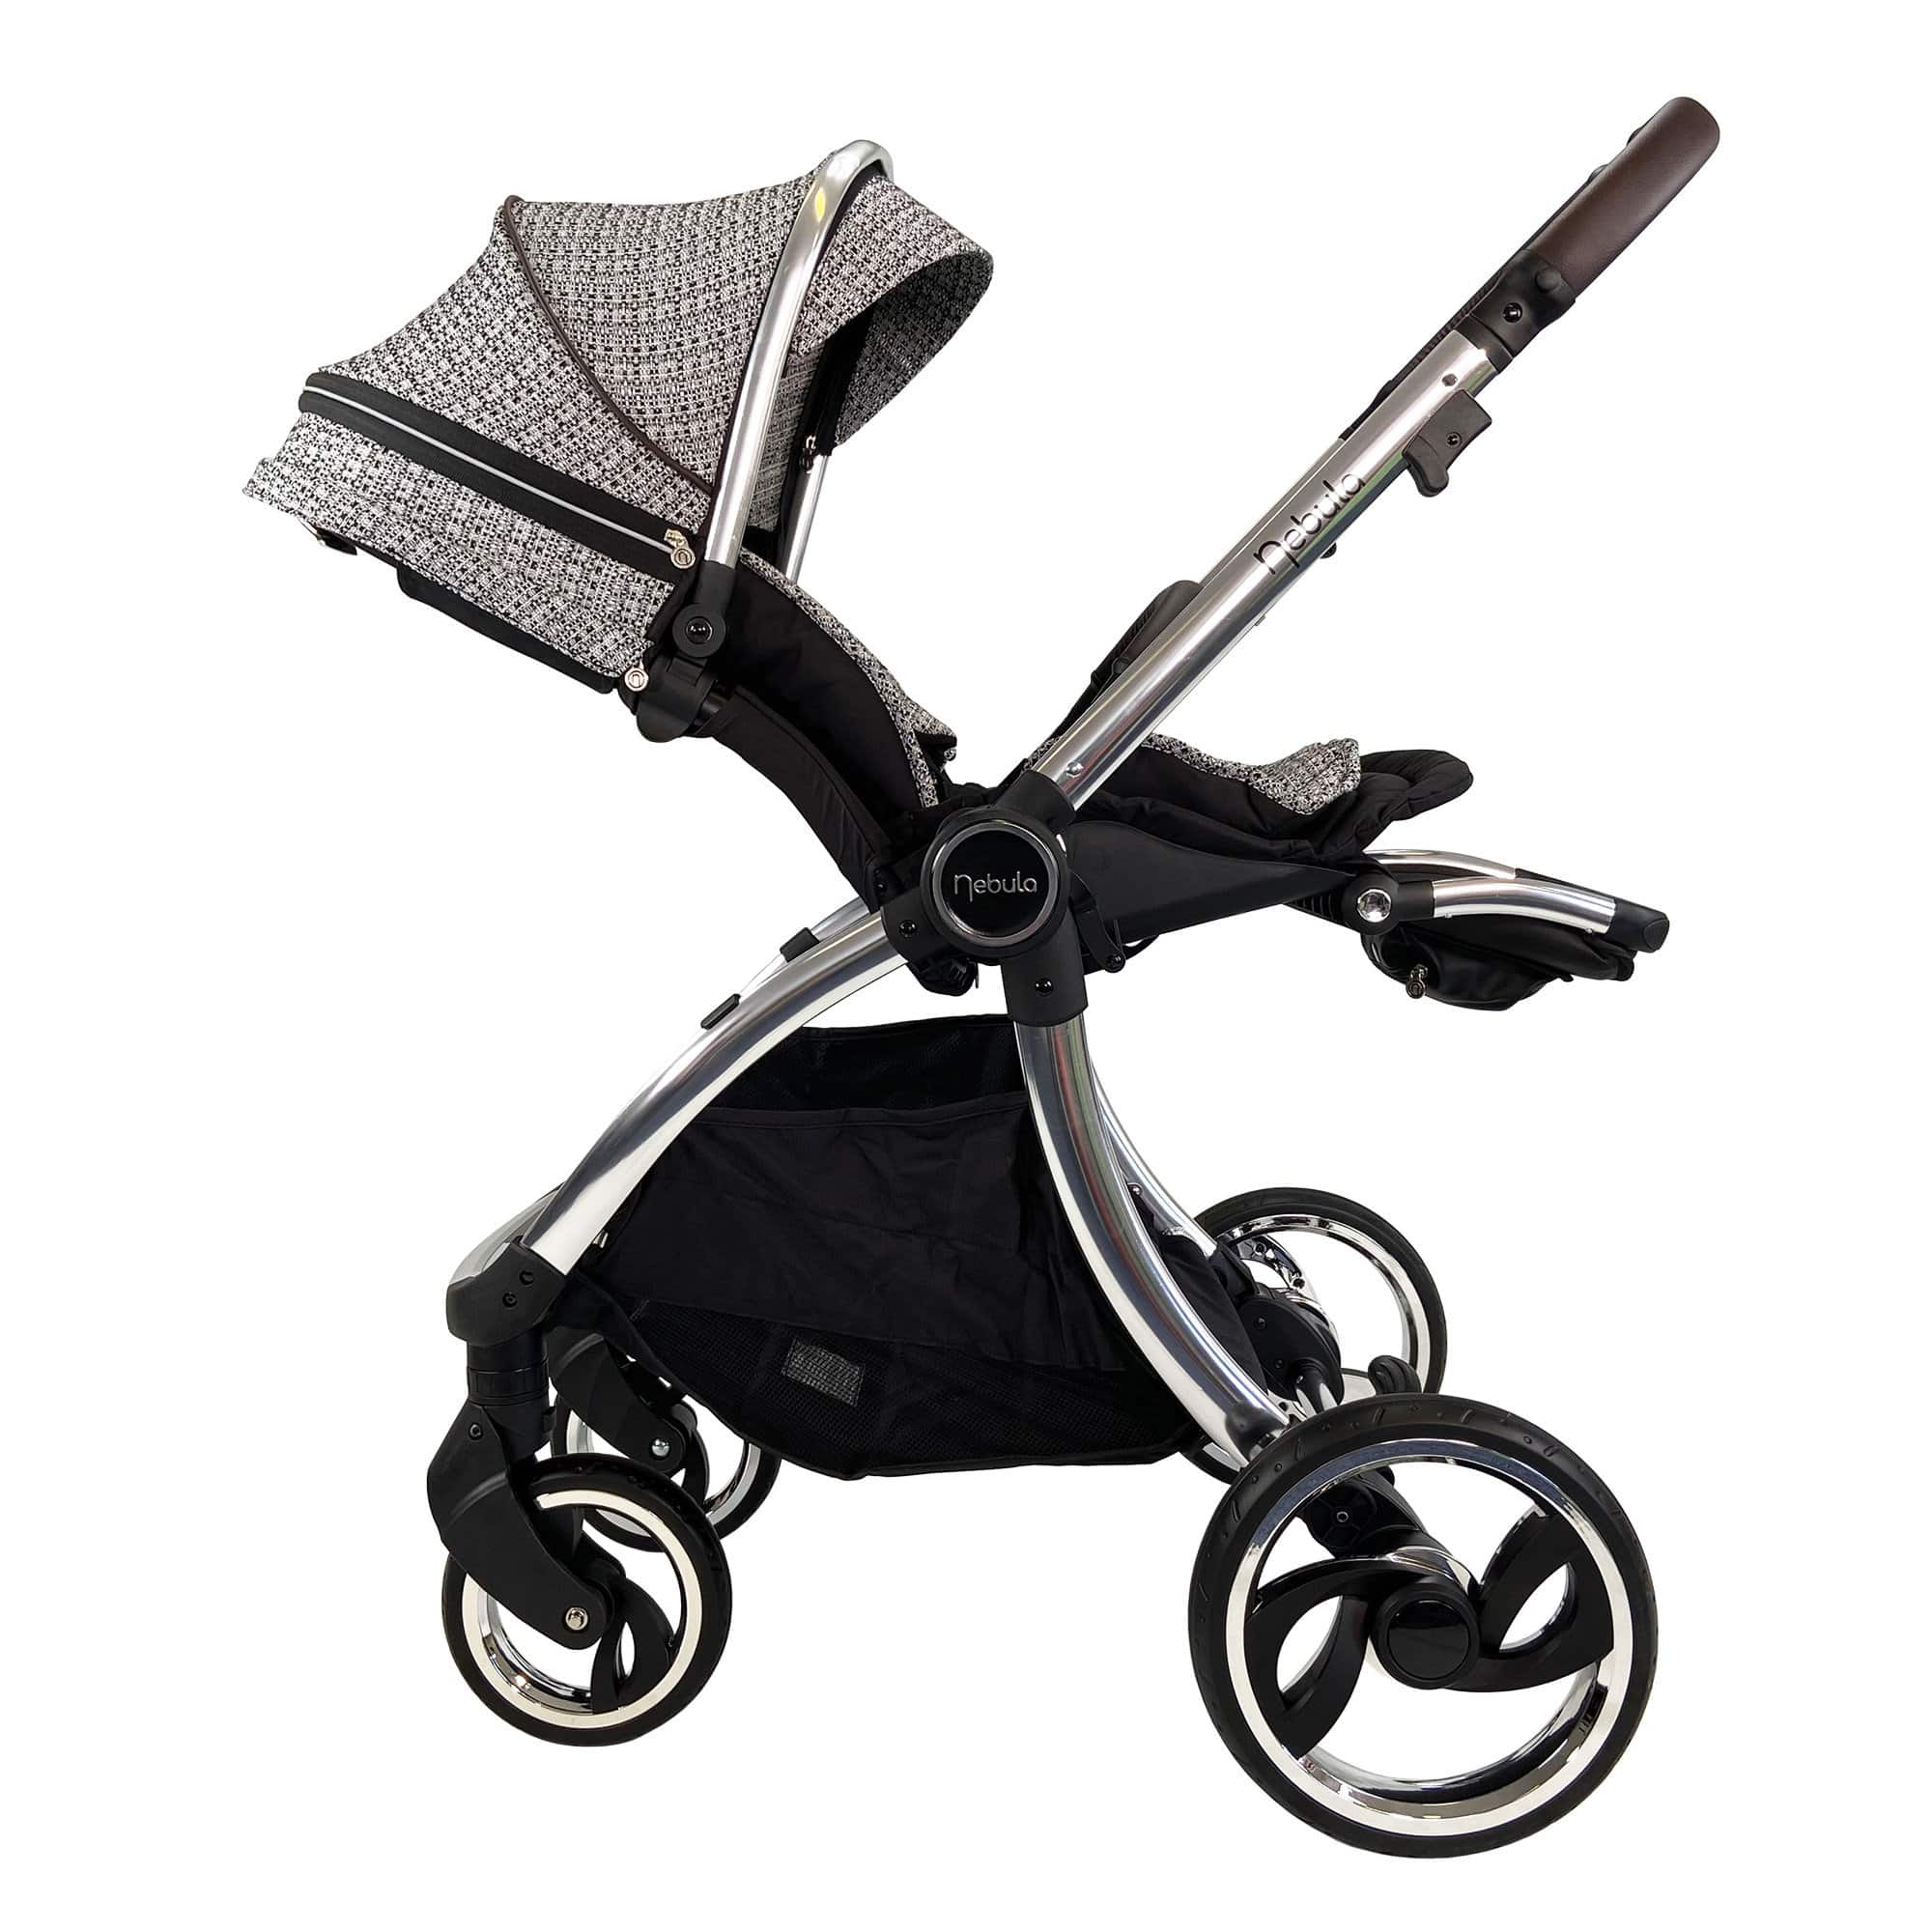 Venture Nebula Signature stroller with seat backrest in reclined position